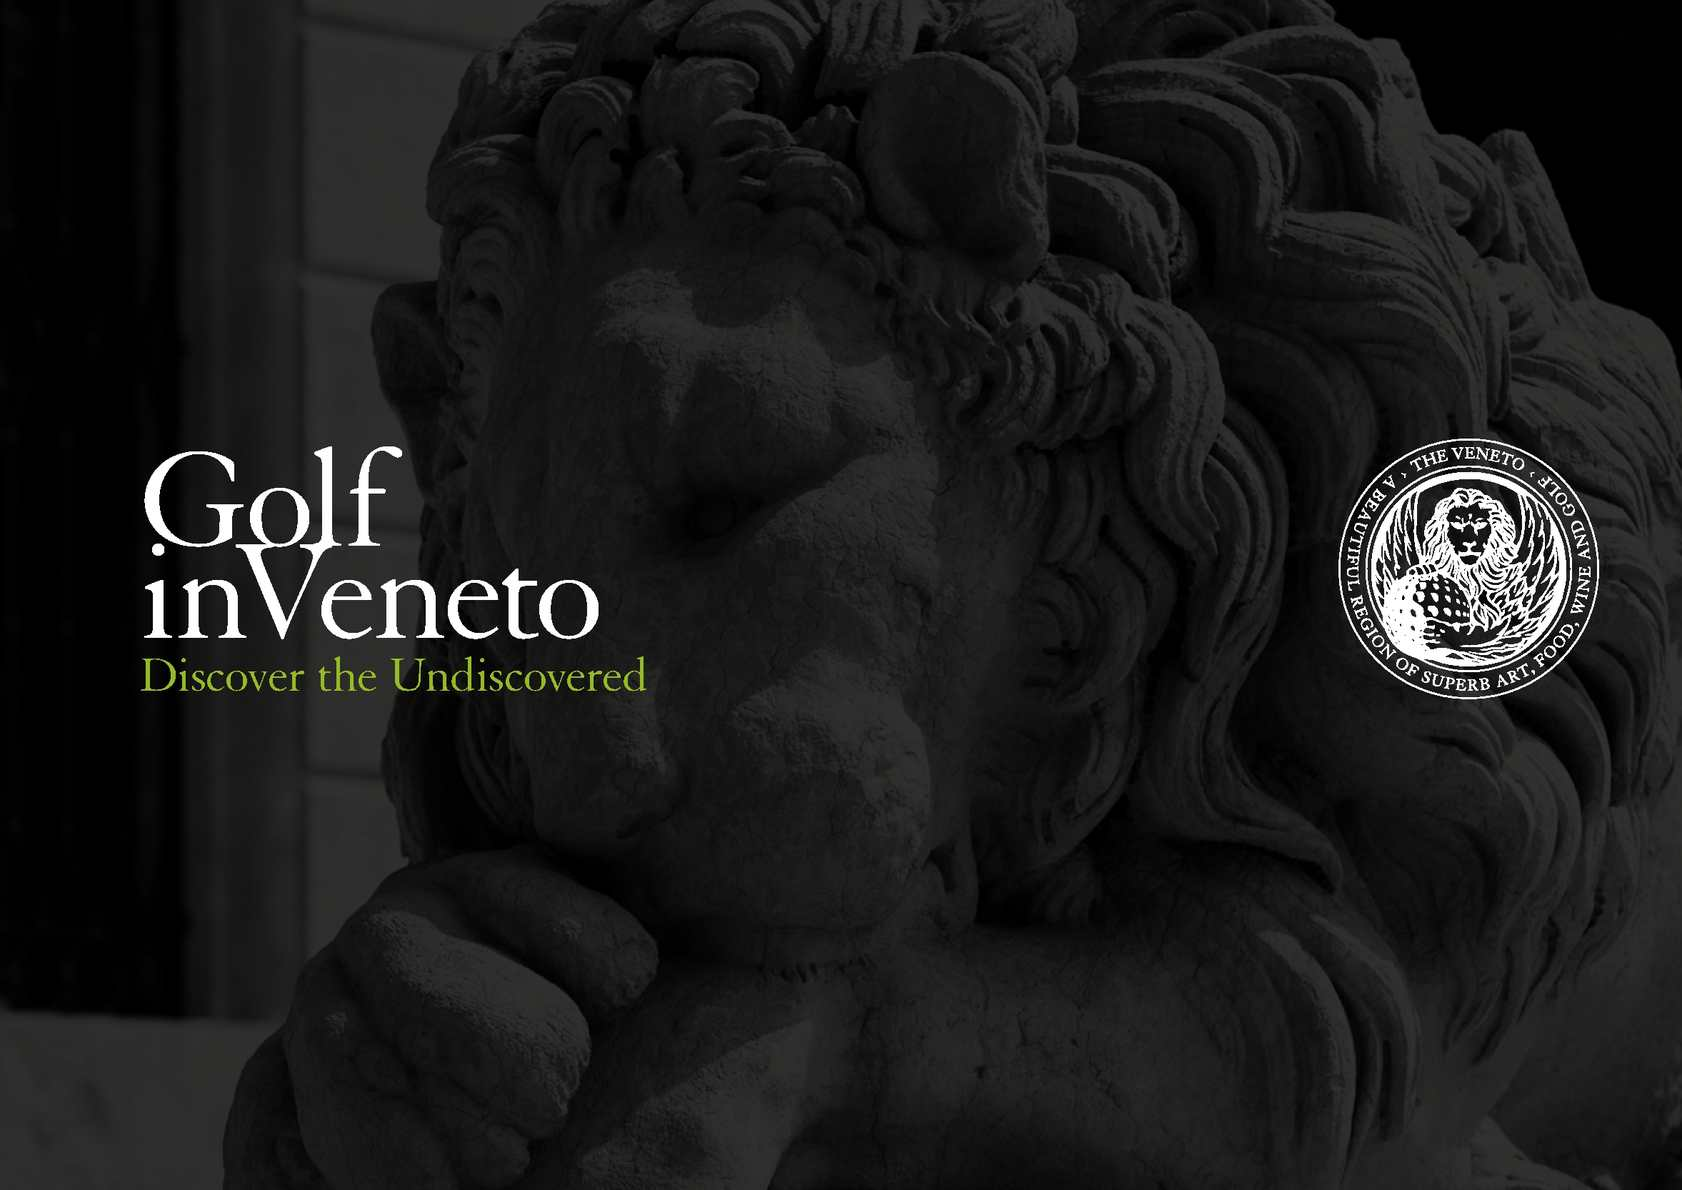 Arte Veneziana Srl Martellago Calaméo Golf In Veneto Discover The Undiscovered